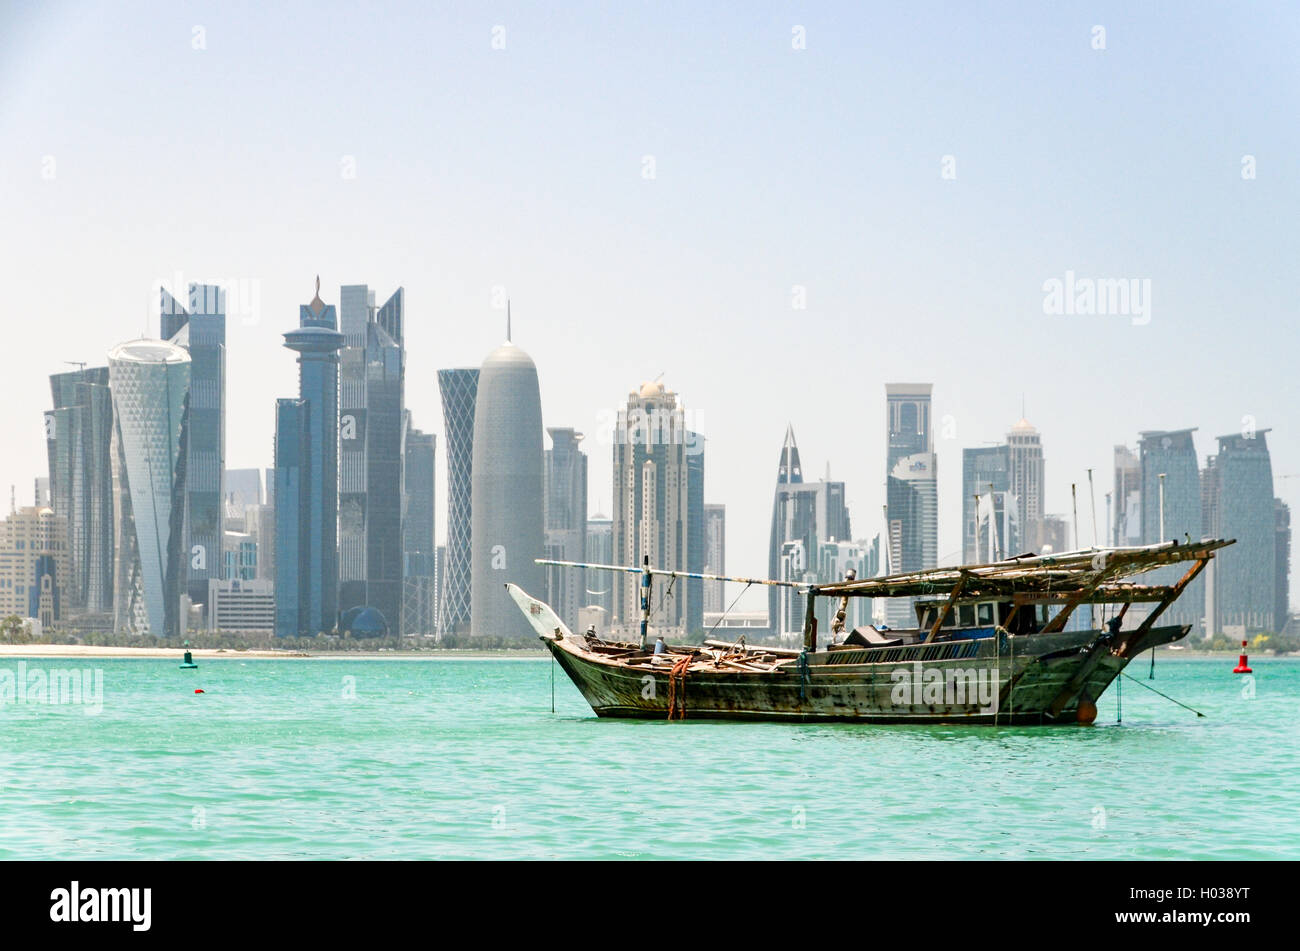 Dhow harbour in Doha, Qatar - Stock Image